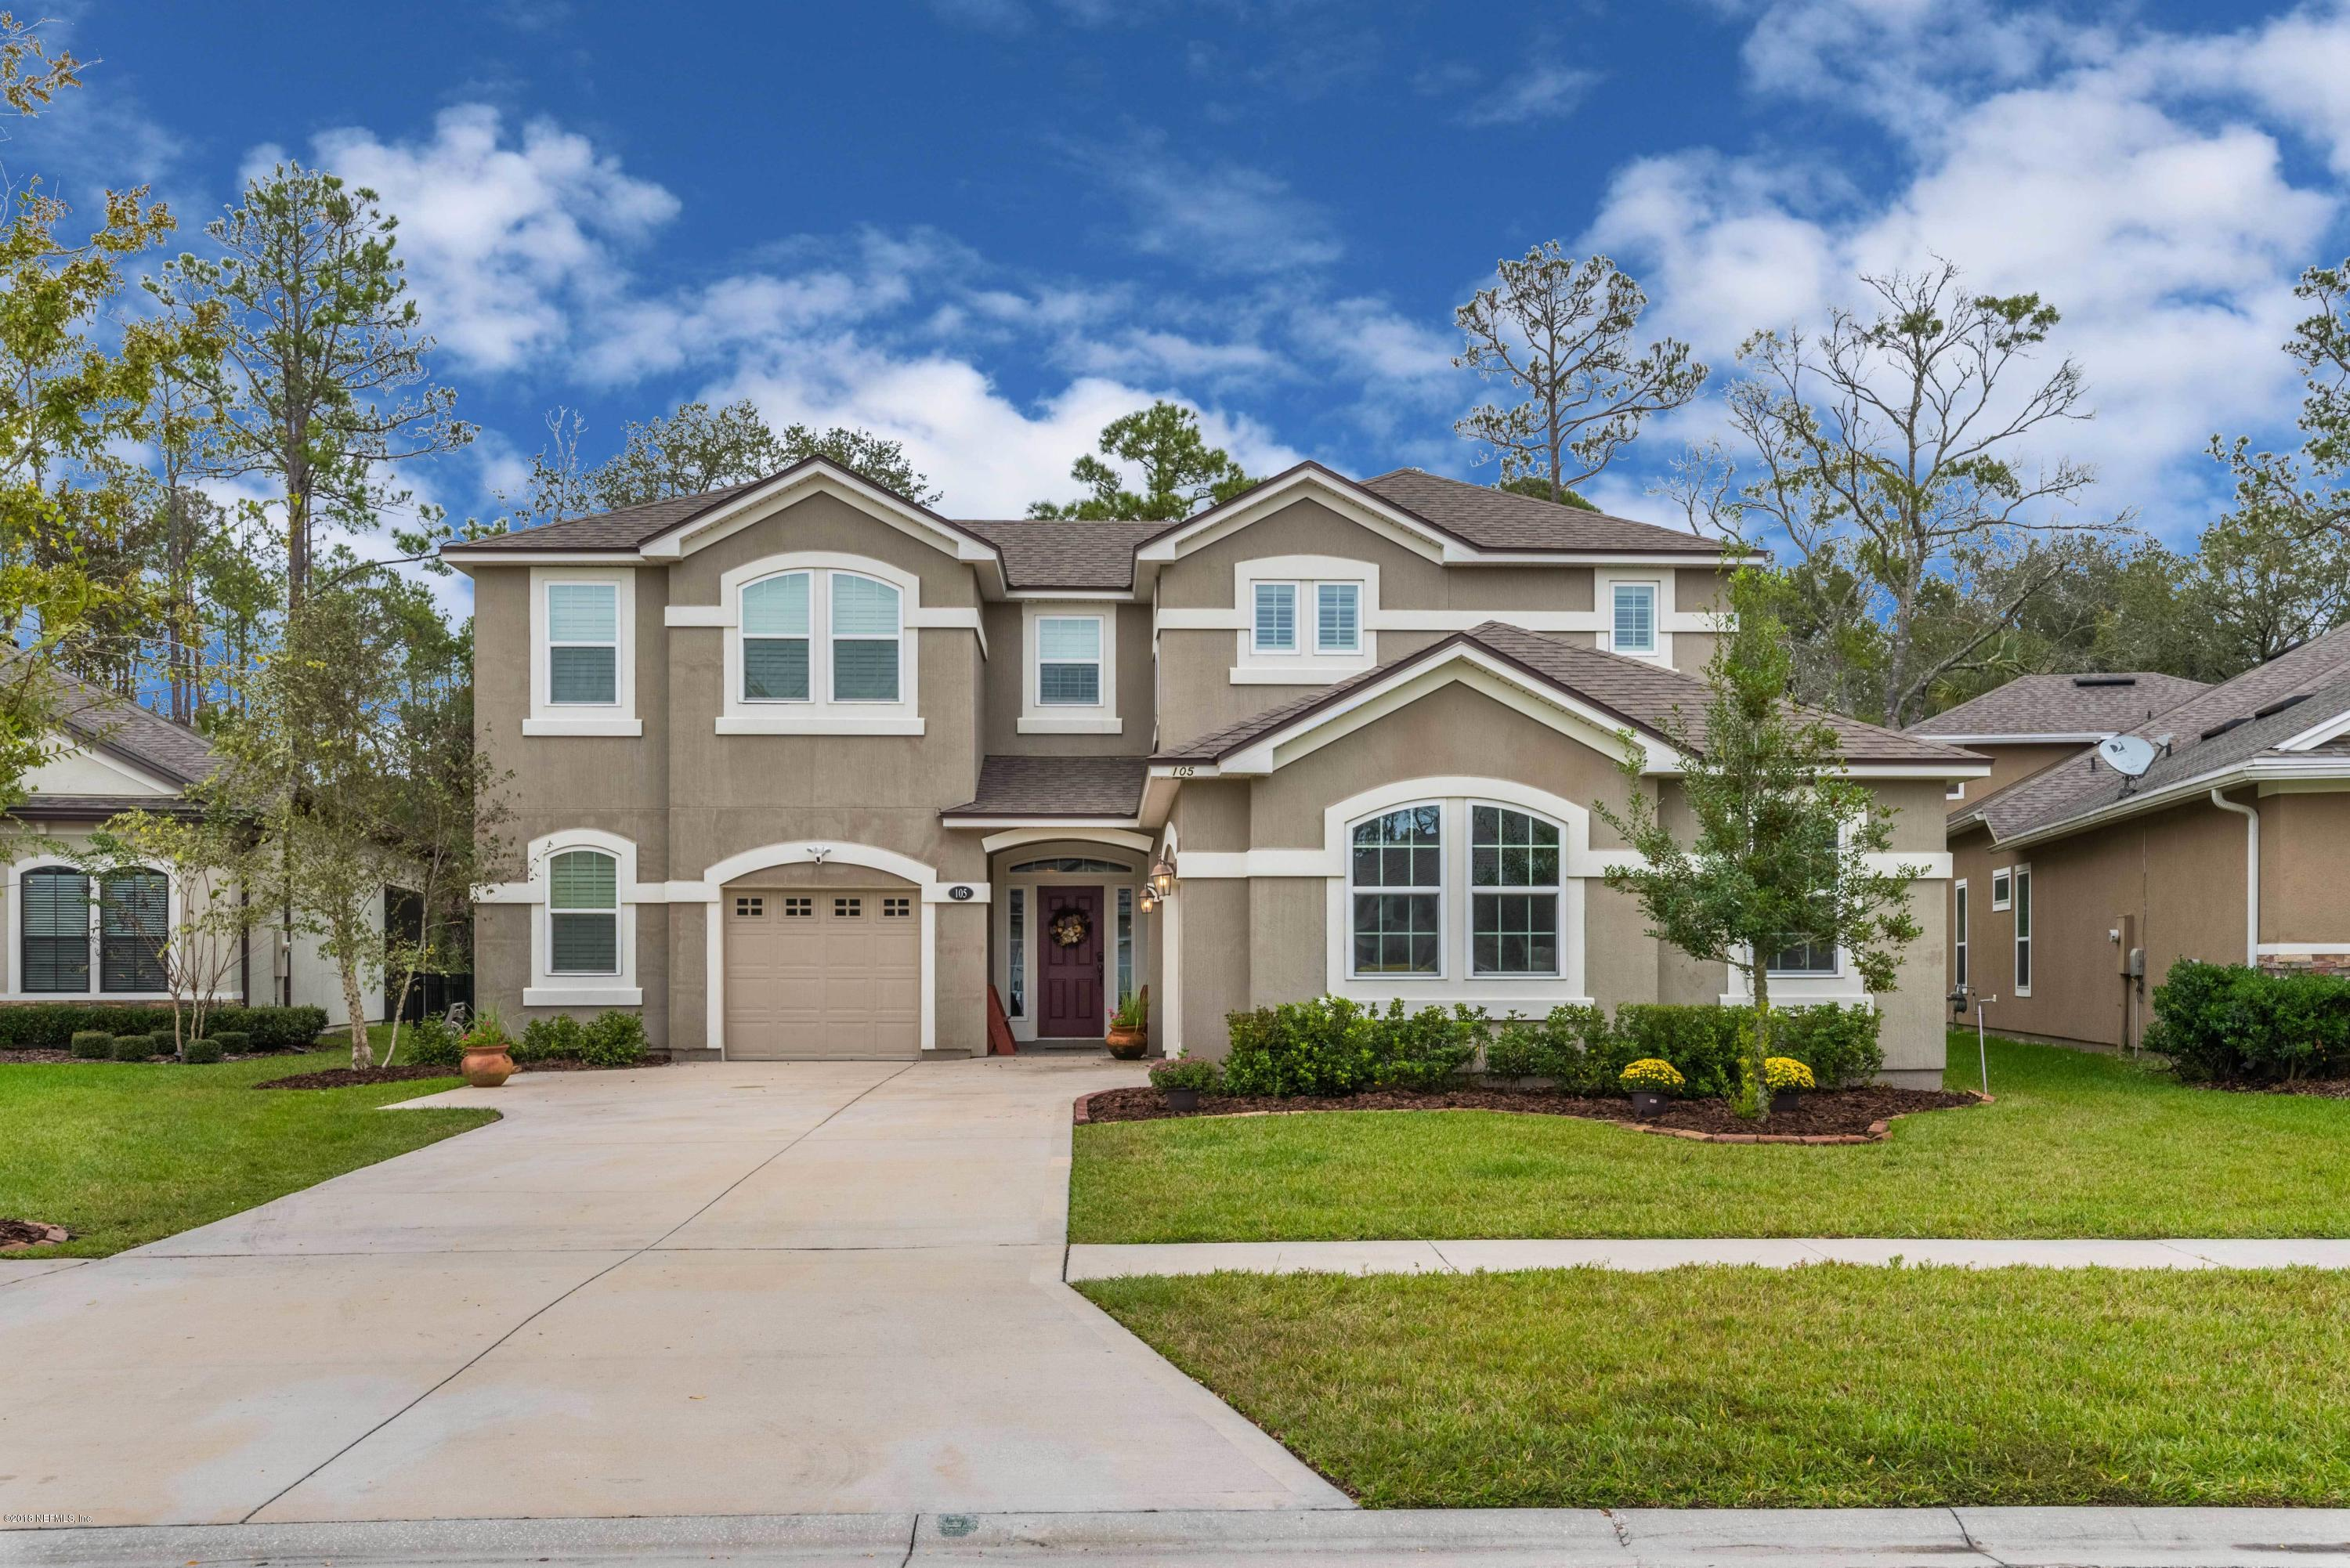 105 STONY FORD, PONTE VEDRA, FLORIDA 32081, 4 Bedrooms Bedrooms, ,3 BathroomsBathrooms,Residential - single family,For sale,STONY FORD,967775